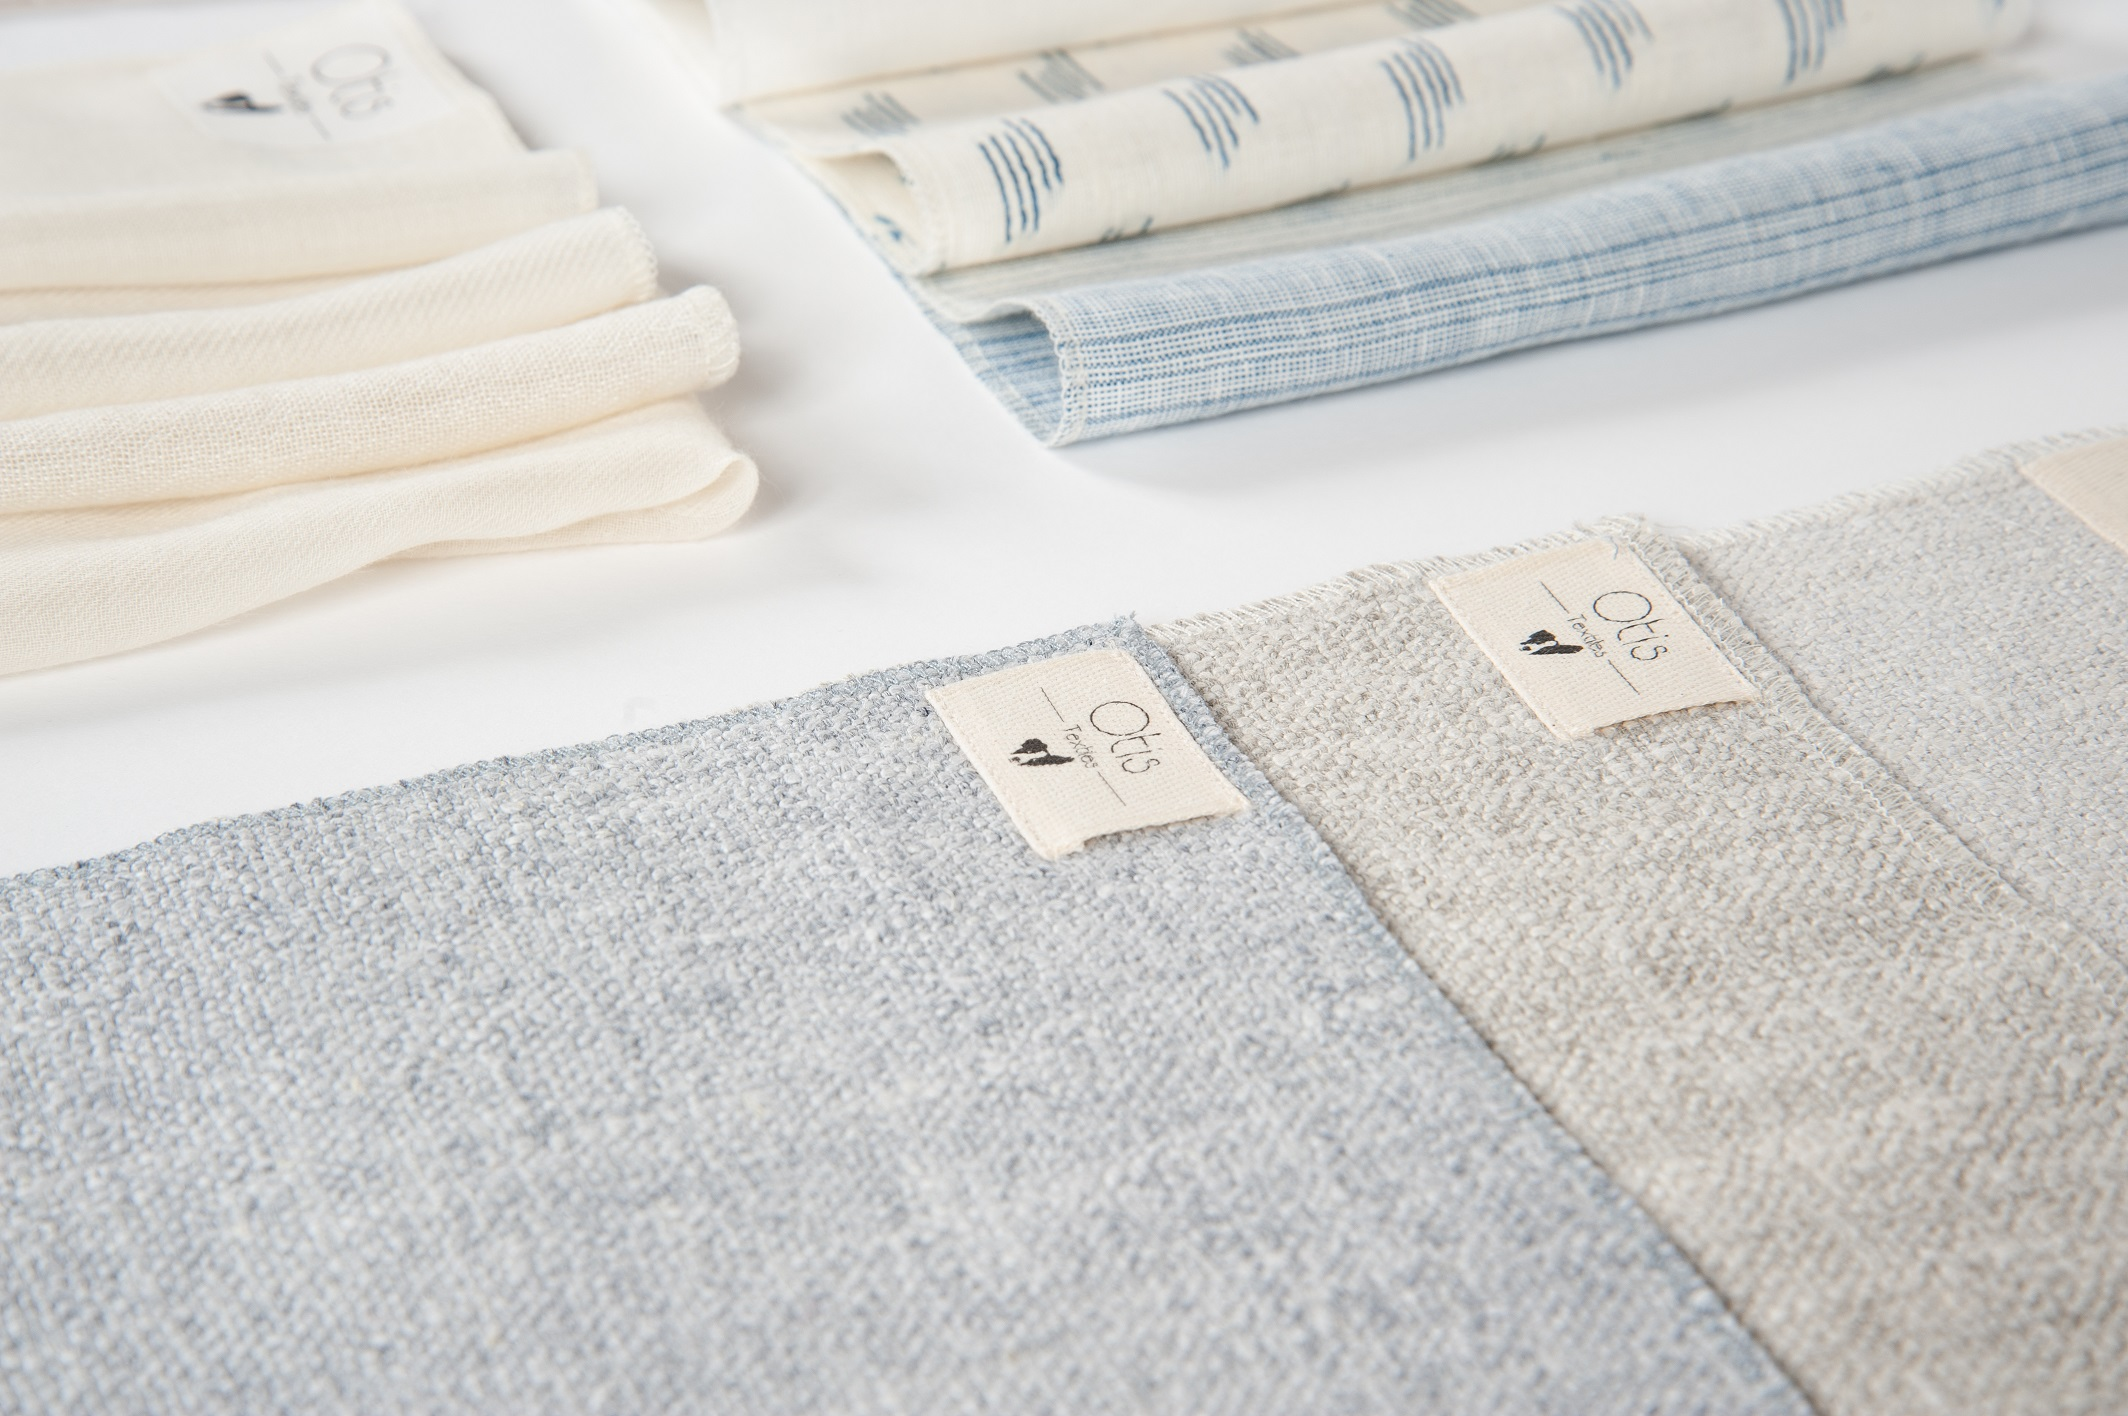 Collection No.2 - Our Winter collection, crafted partly in Italy along with various other mills throughout Europe, offers warm cream sheers accompanied by a selection of drapery and upholstery weight solids synonymous with our first collection.